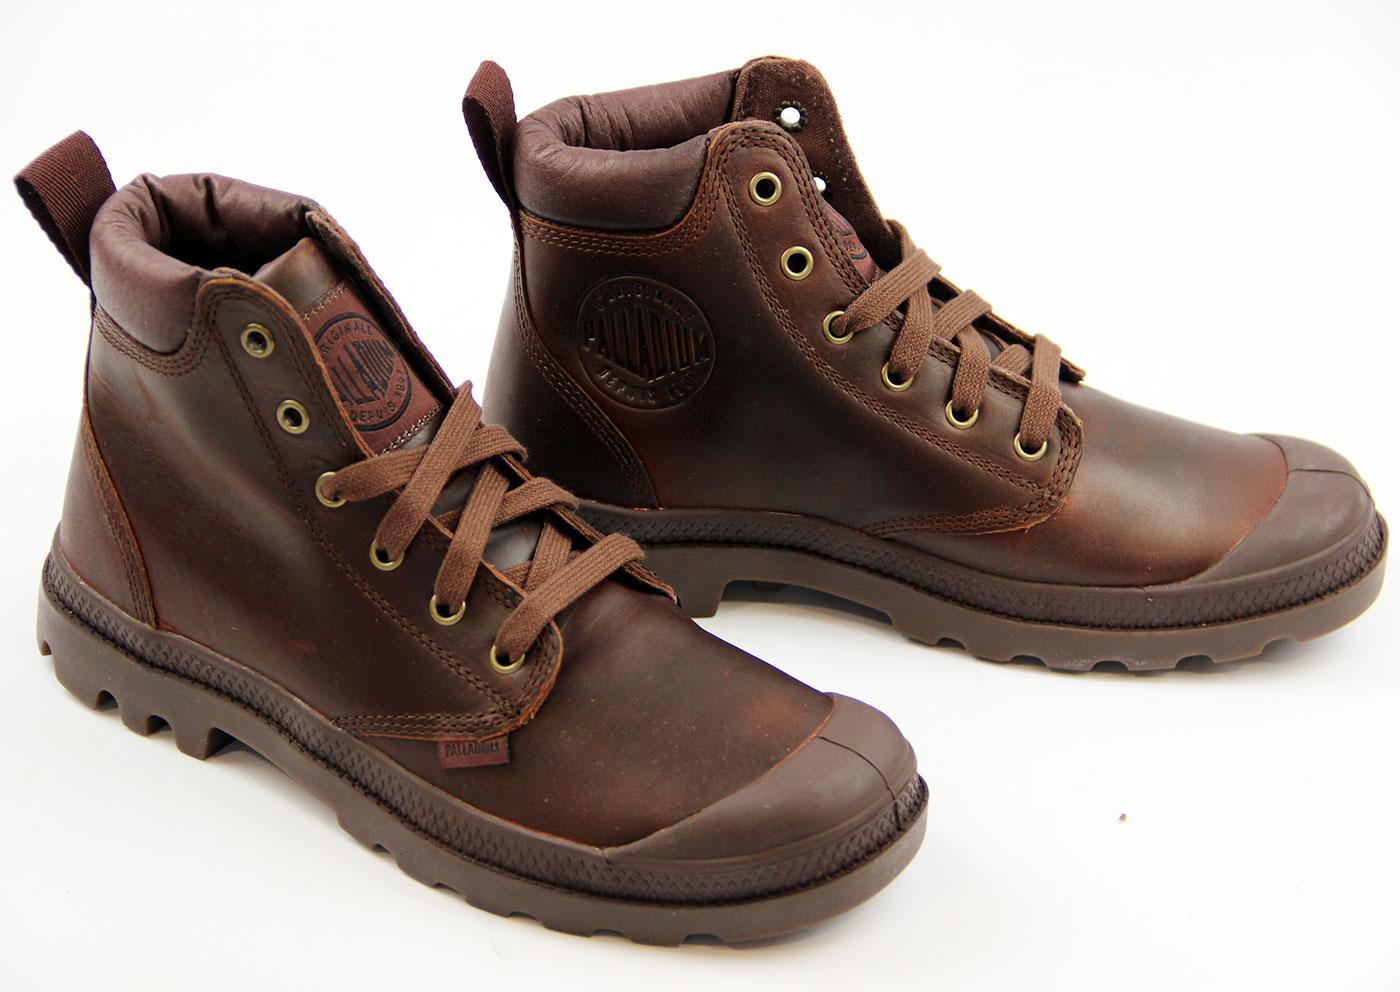 Palladium Pampa Hi Cuff Leather Boots